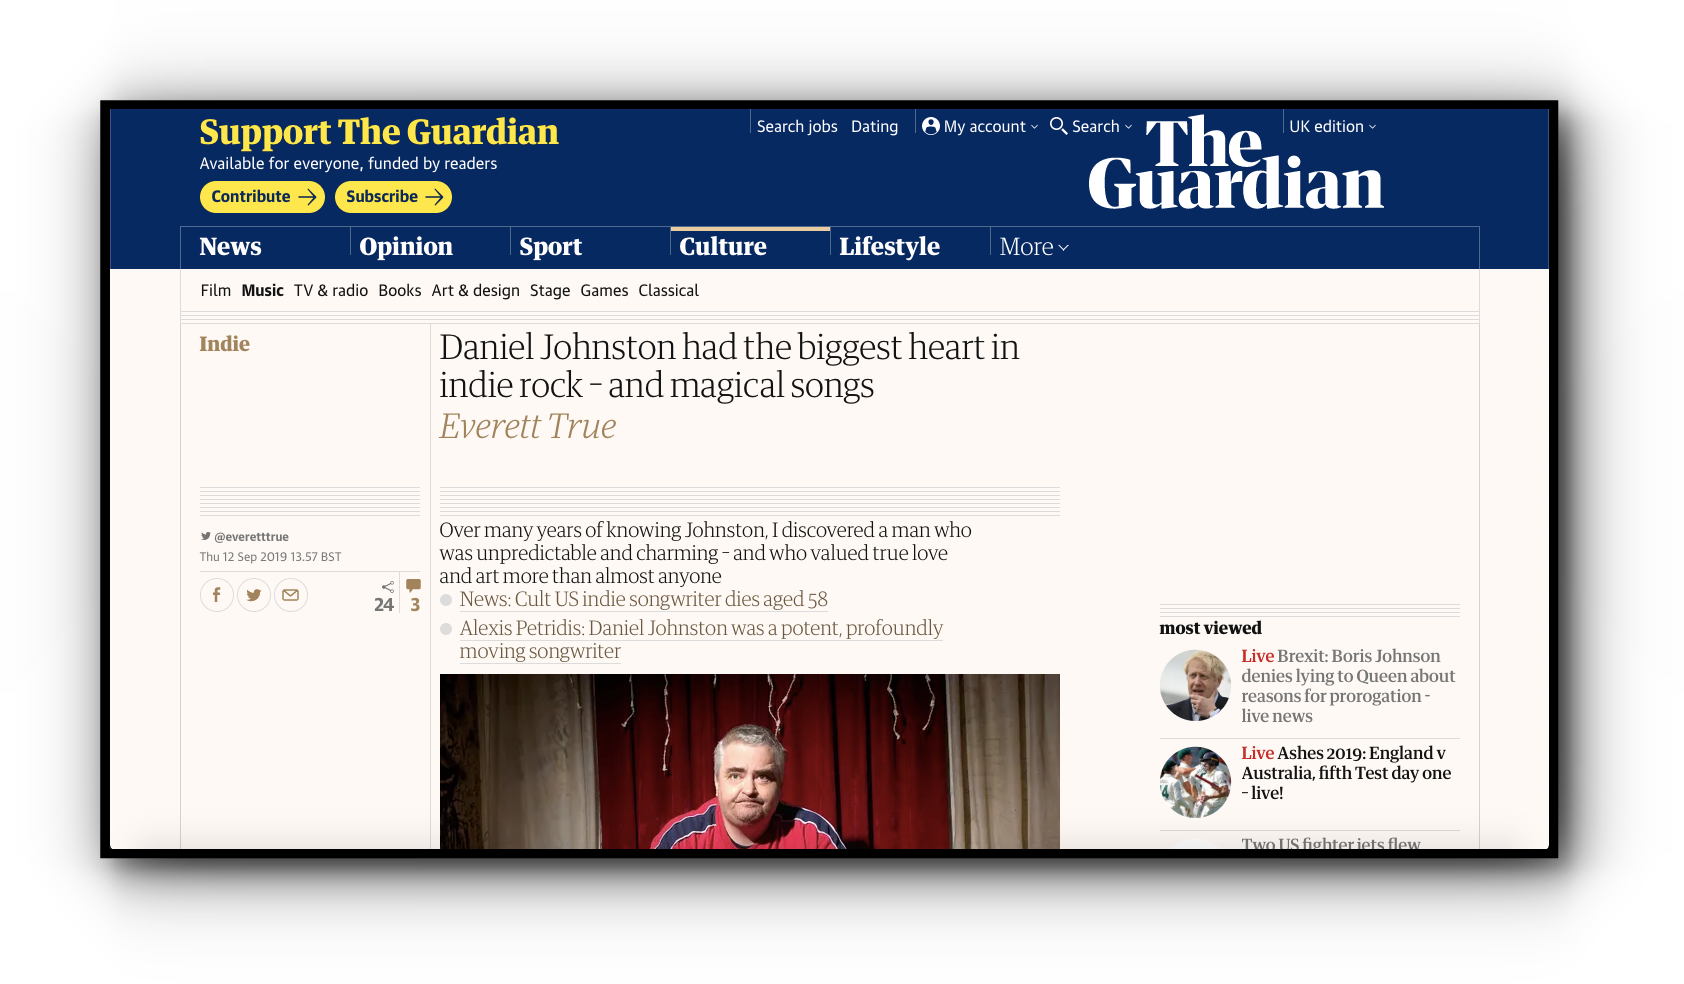 The Guardian's subtle on-site branding